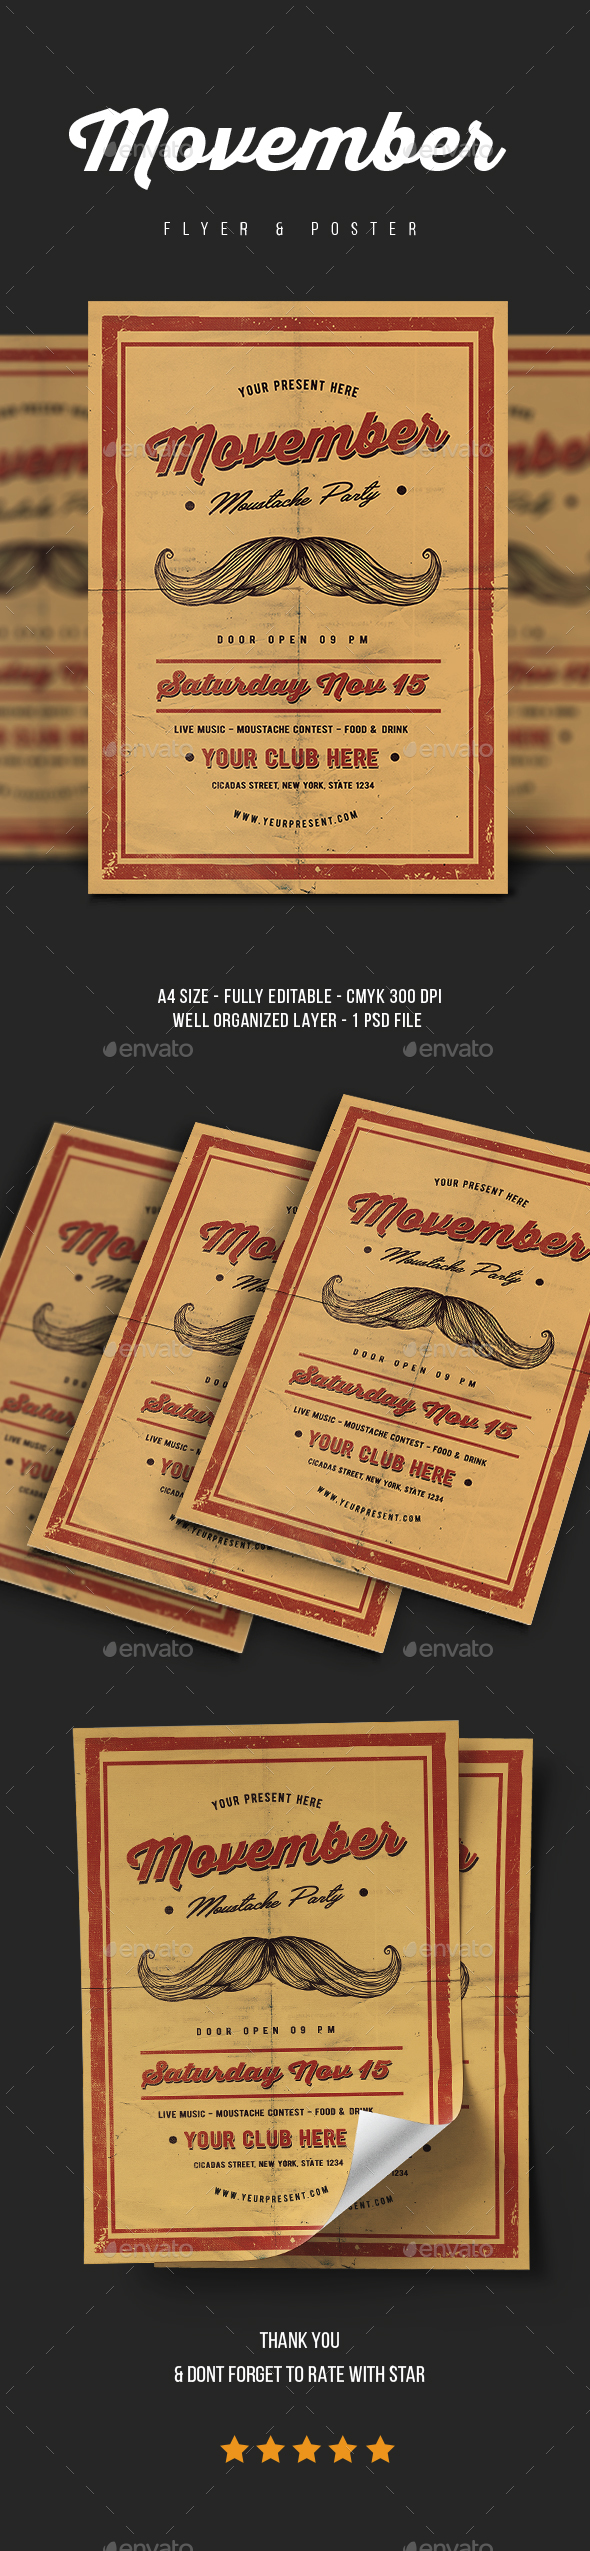 GraphicRiver Movember Flyer Vol.2 20882870